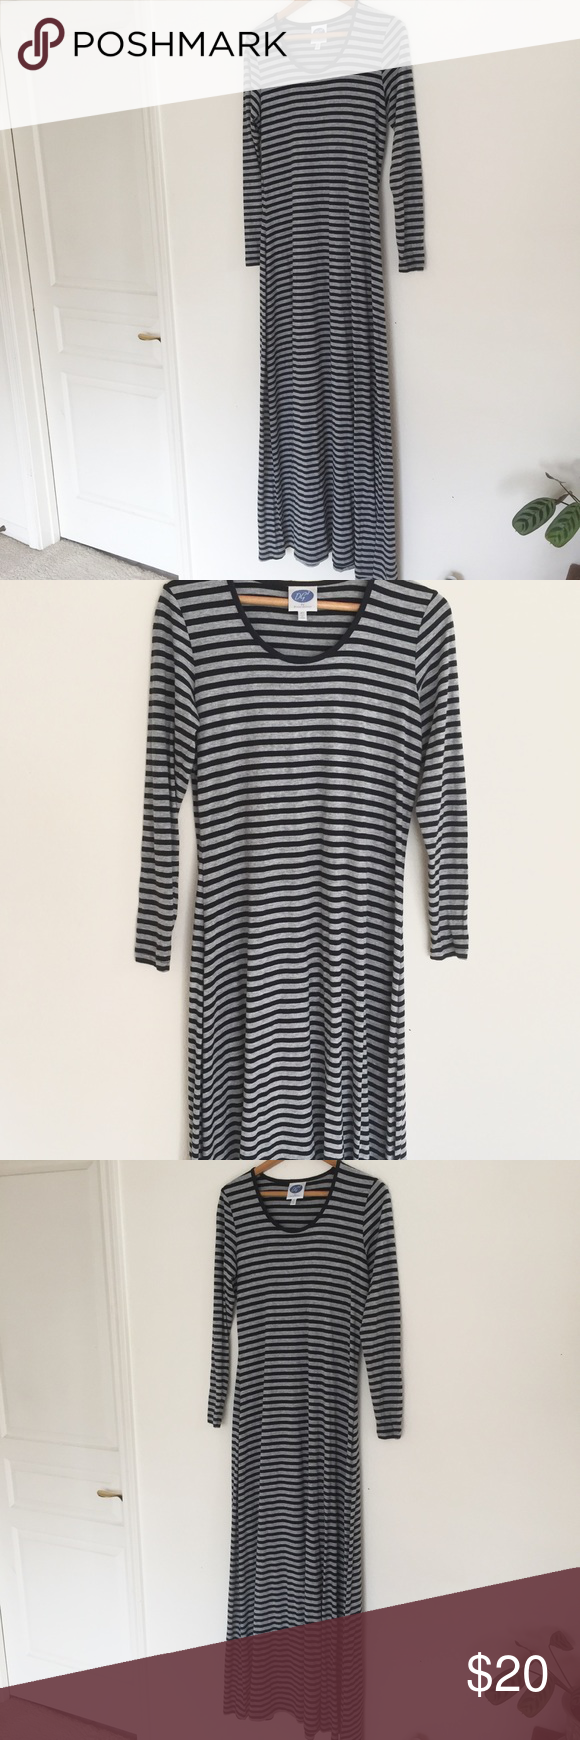 Black and grey striped long sleeved maxi dress long sleeve maxi